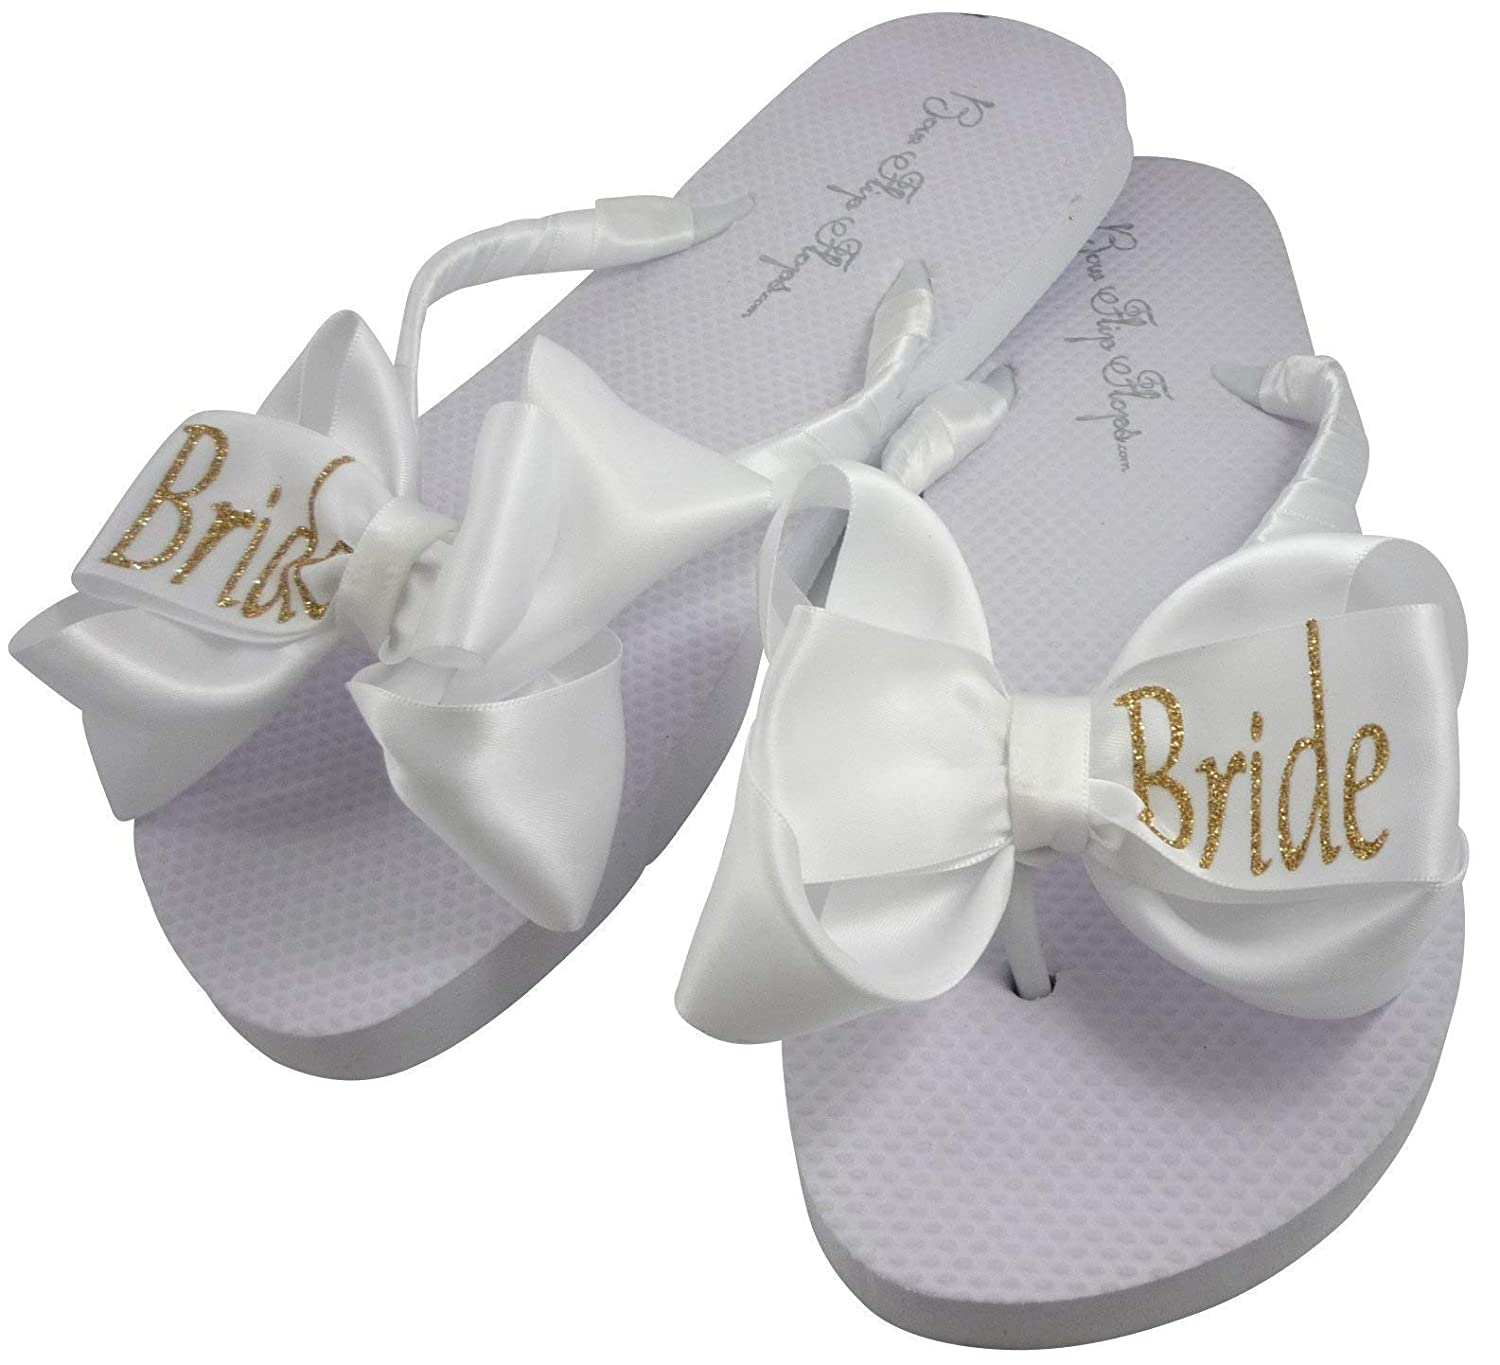 c4a7750e07f7d Gold Bride Glitter Bling Bow Flip Flops for the Wedding - many colors